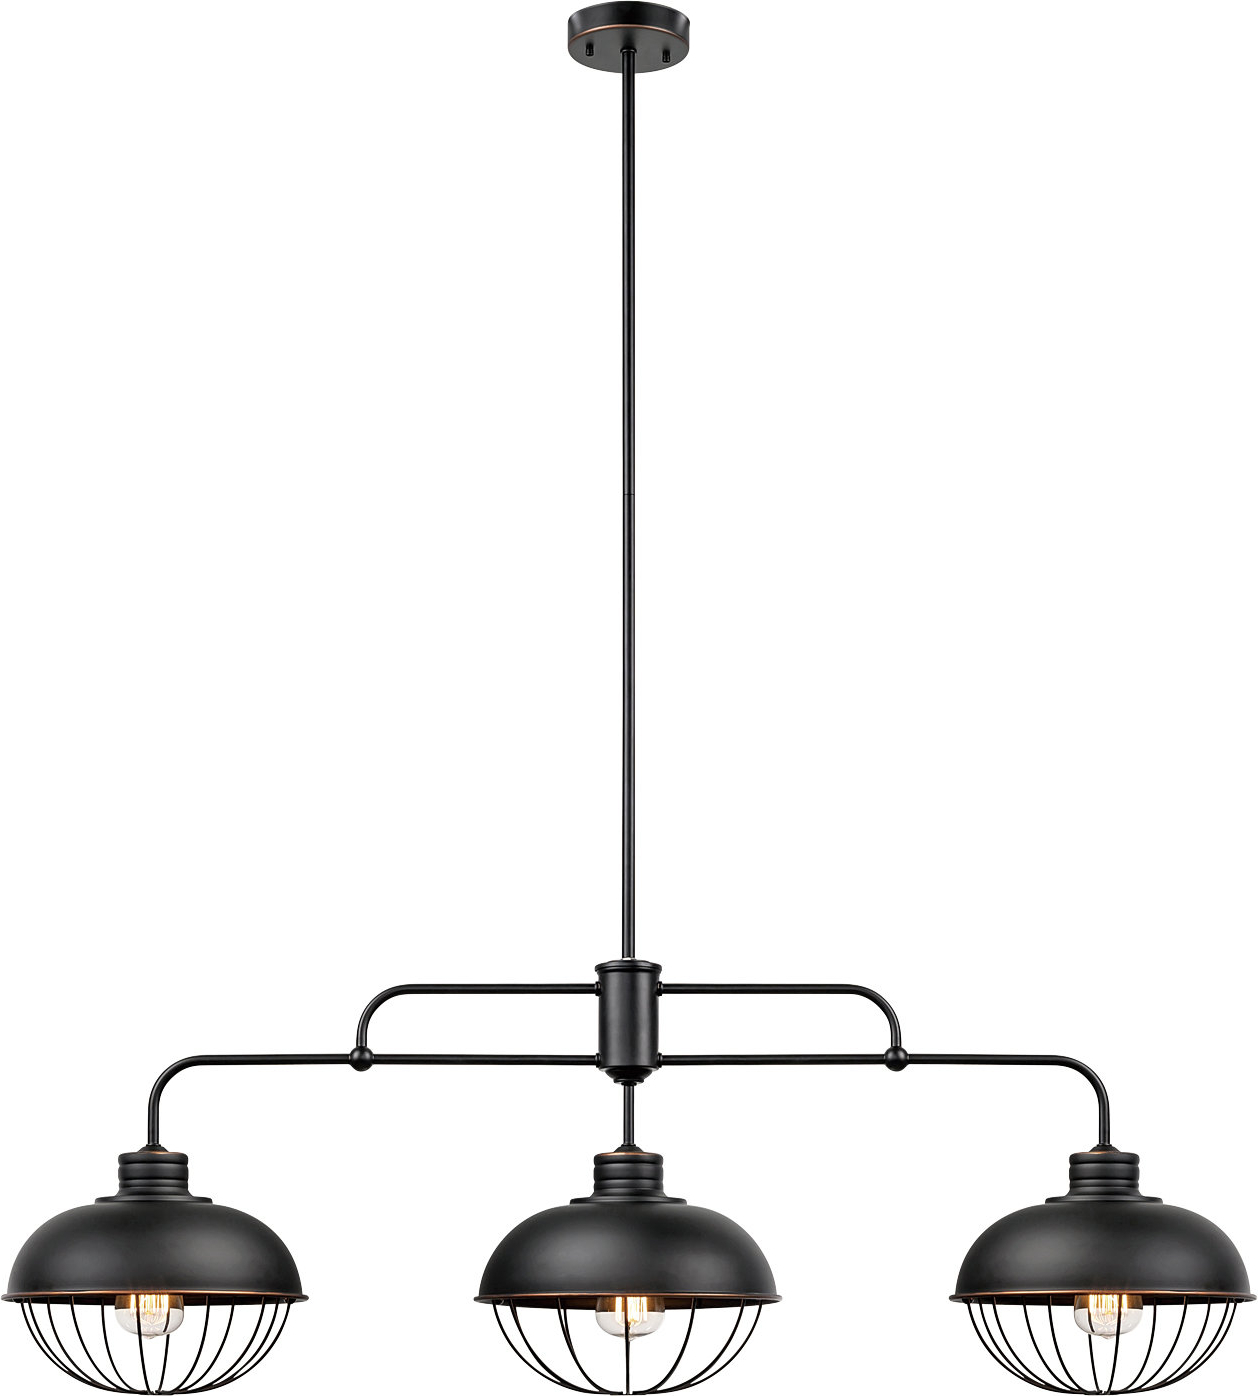 Fashionable Kathi 3 Light Kitchen Island Linear Pendant Intended For Cinchring 4 Light Kitchen Island Linear Pendants (View 8 of 20)